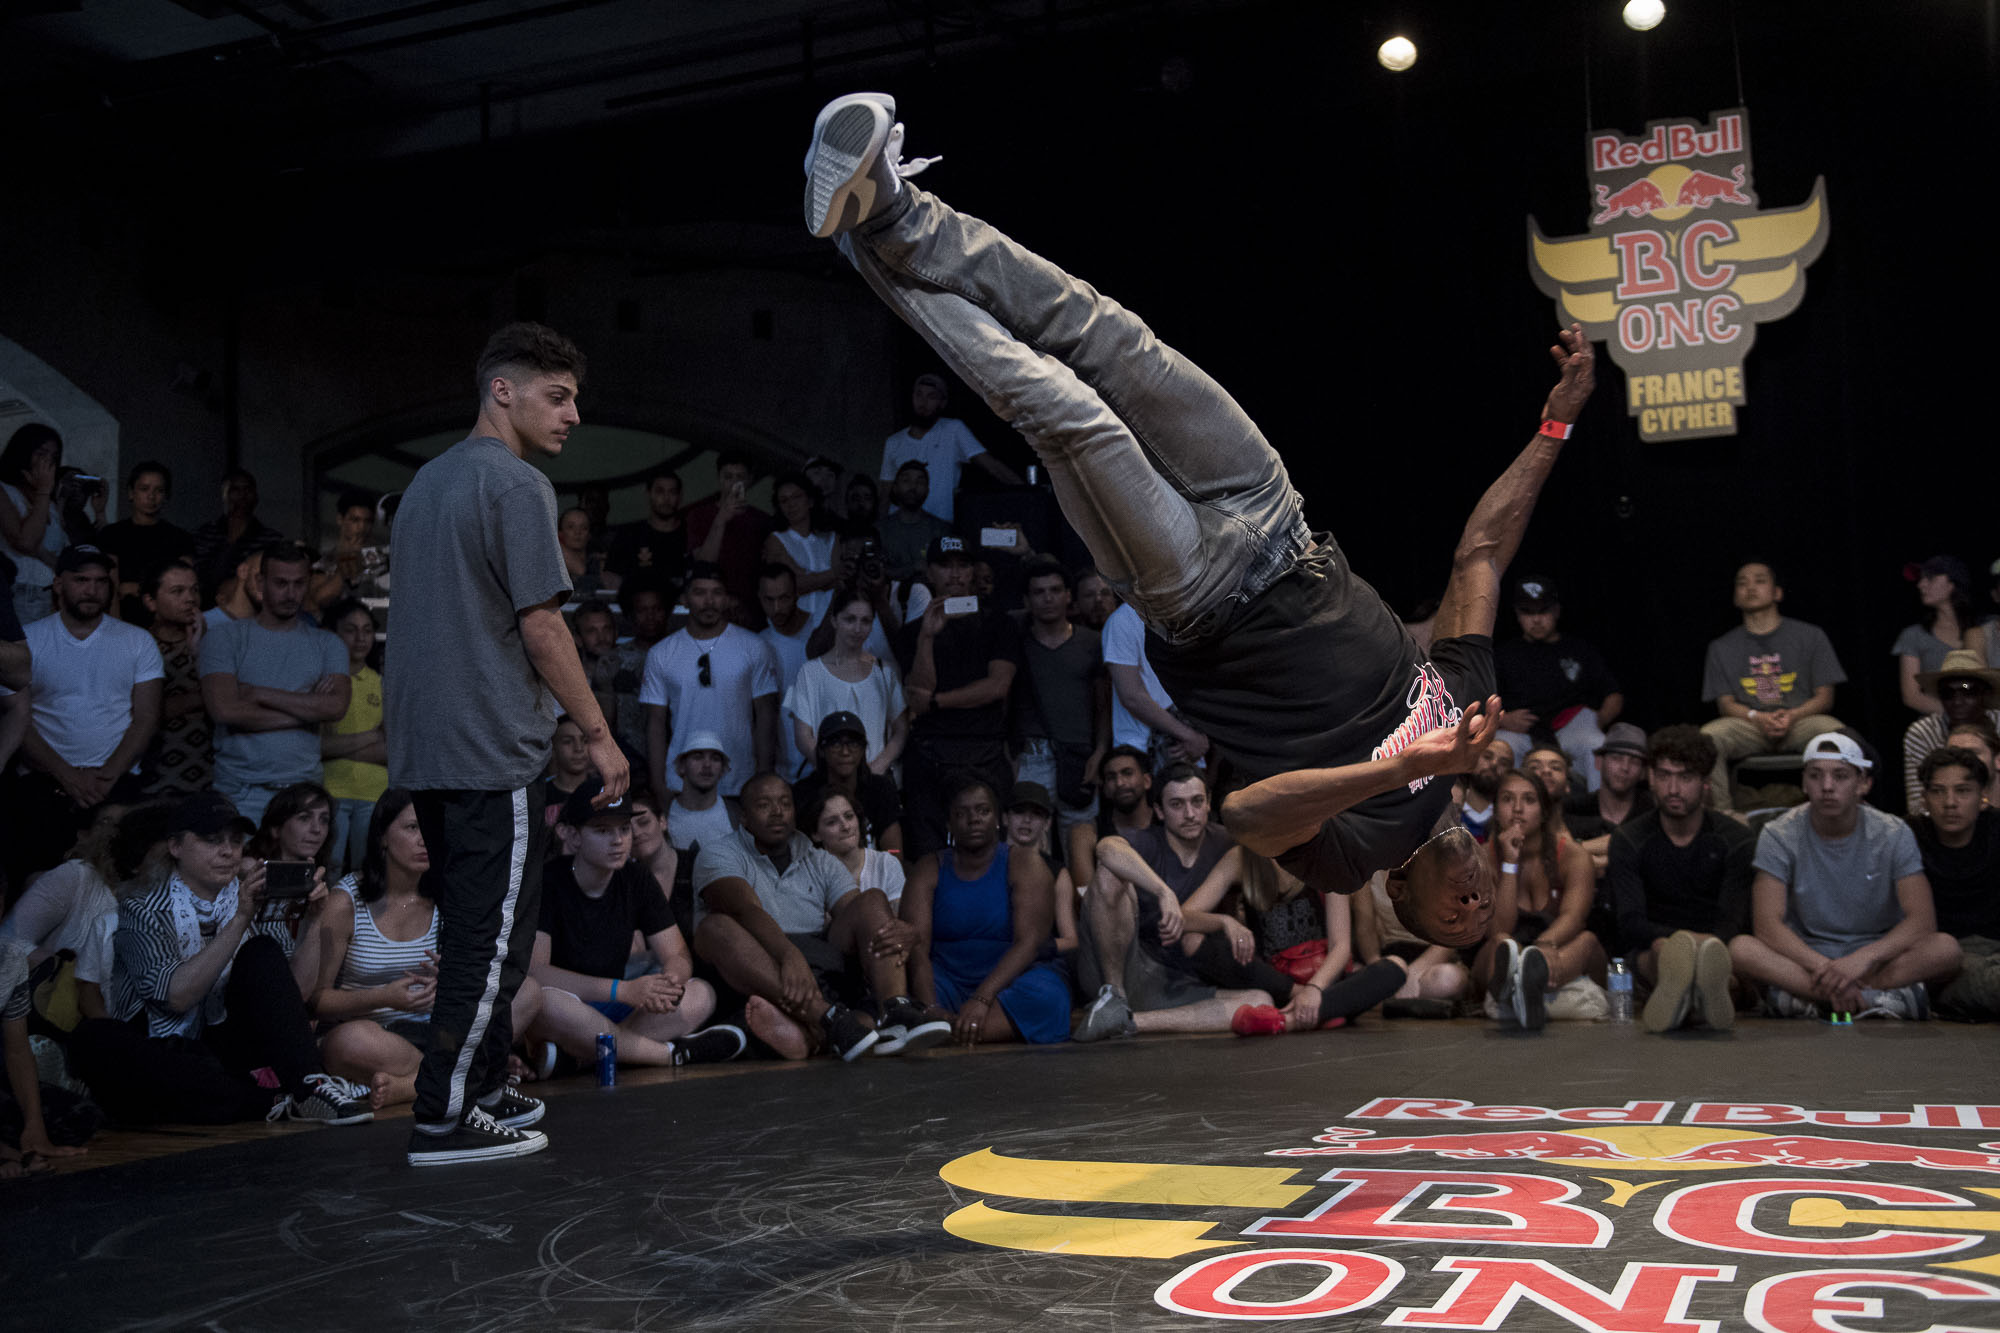 Dany competes at the WIP Villette during the Red Bull BC One France Cypher Final in Paris, France on July 10th 2016.